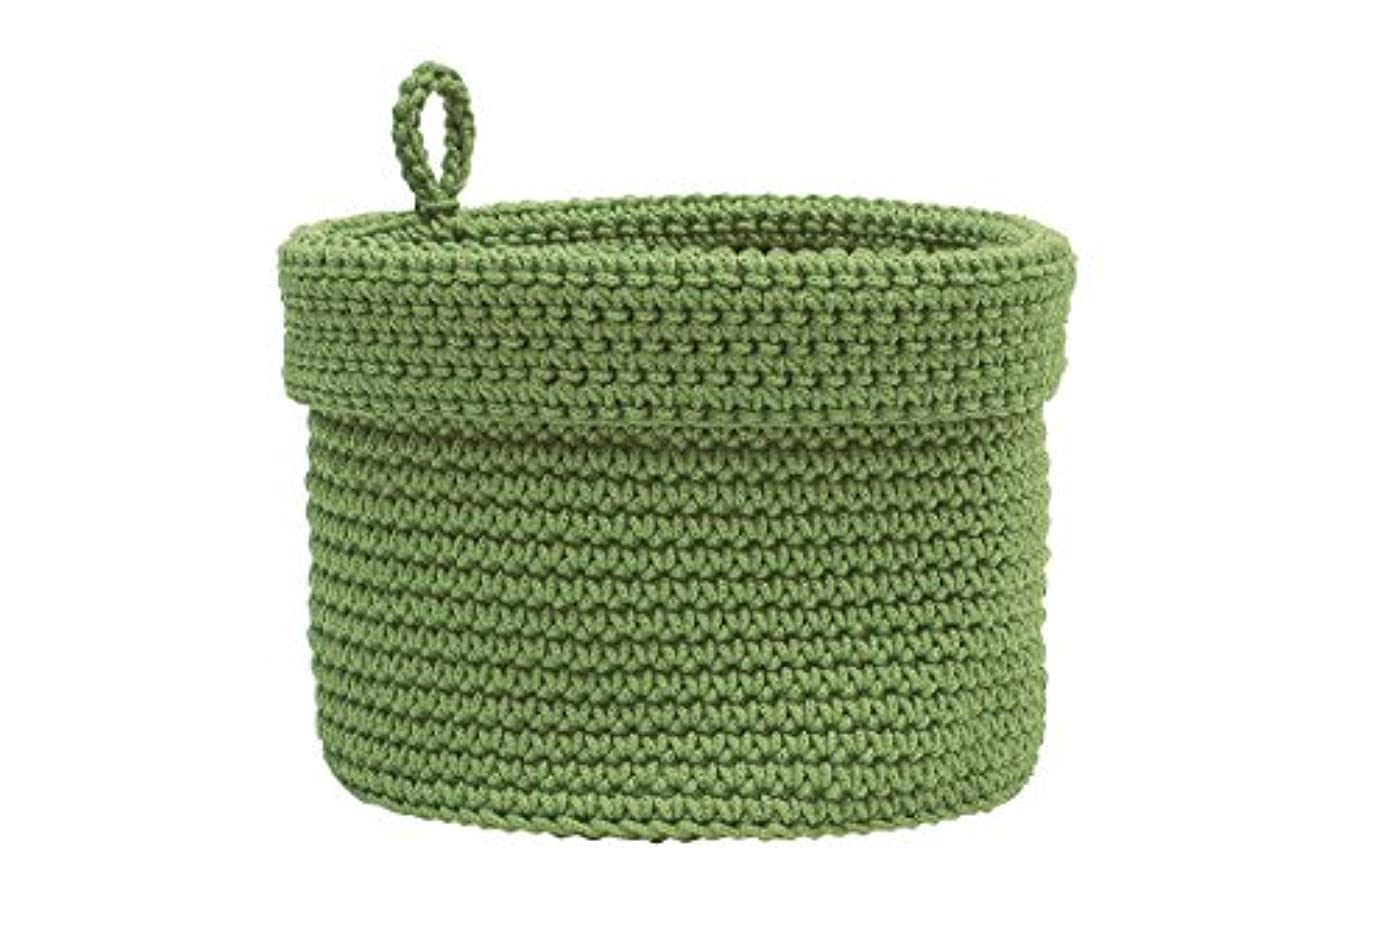 Heritage Lace Mode Crochet Basket with Loop, 10 x 10, Sage